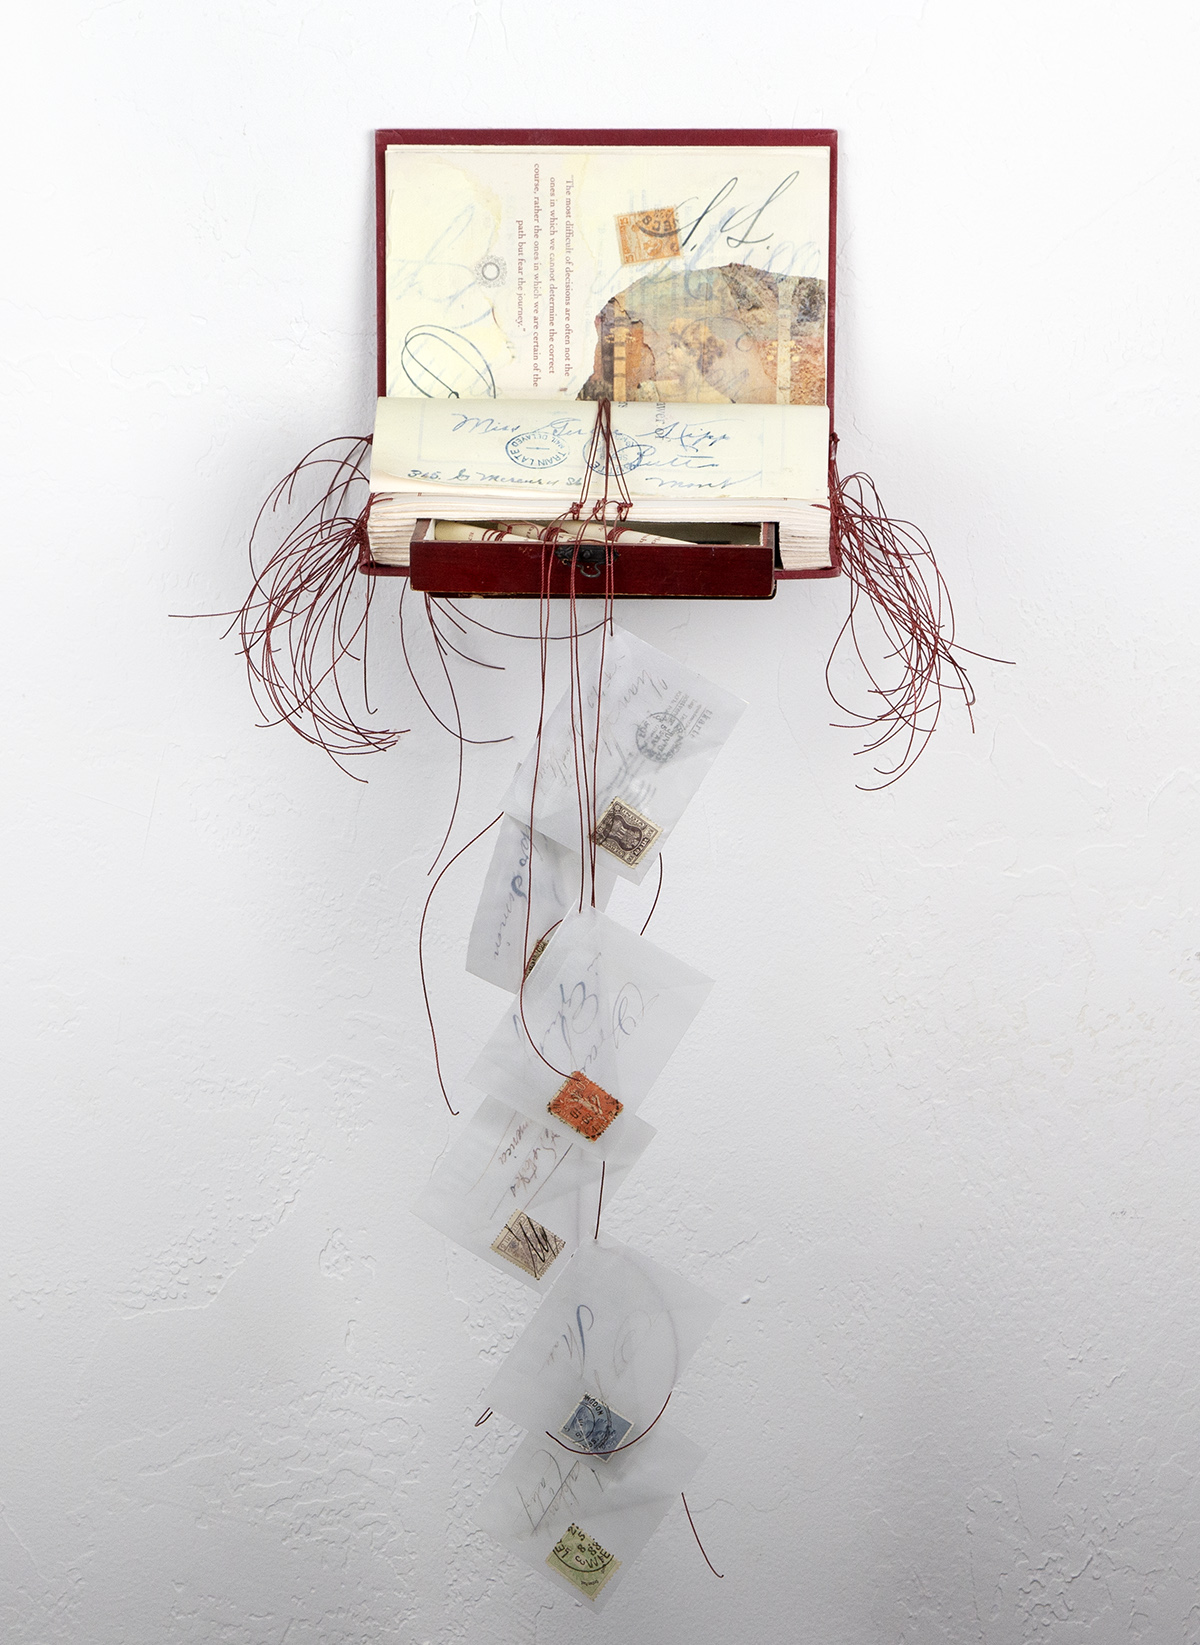 Altered Book by Sandy Young